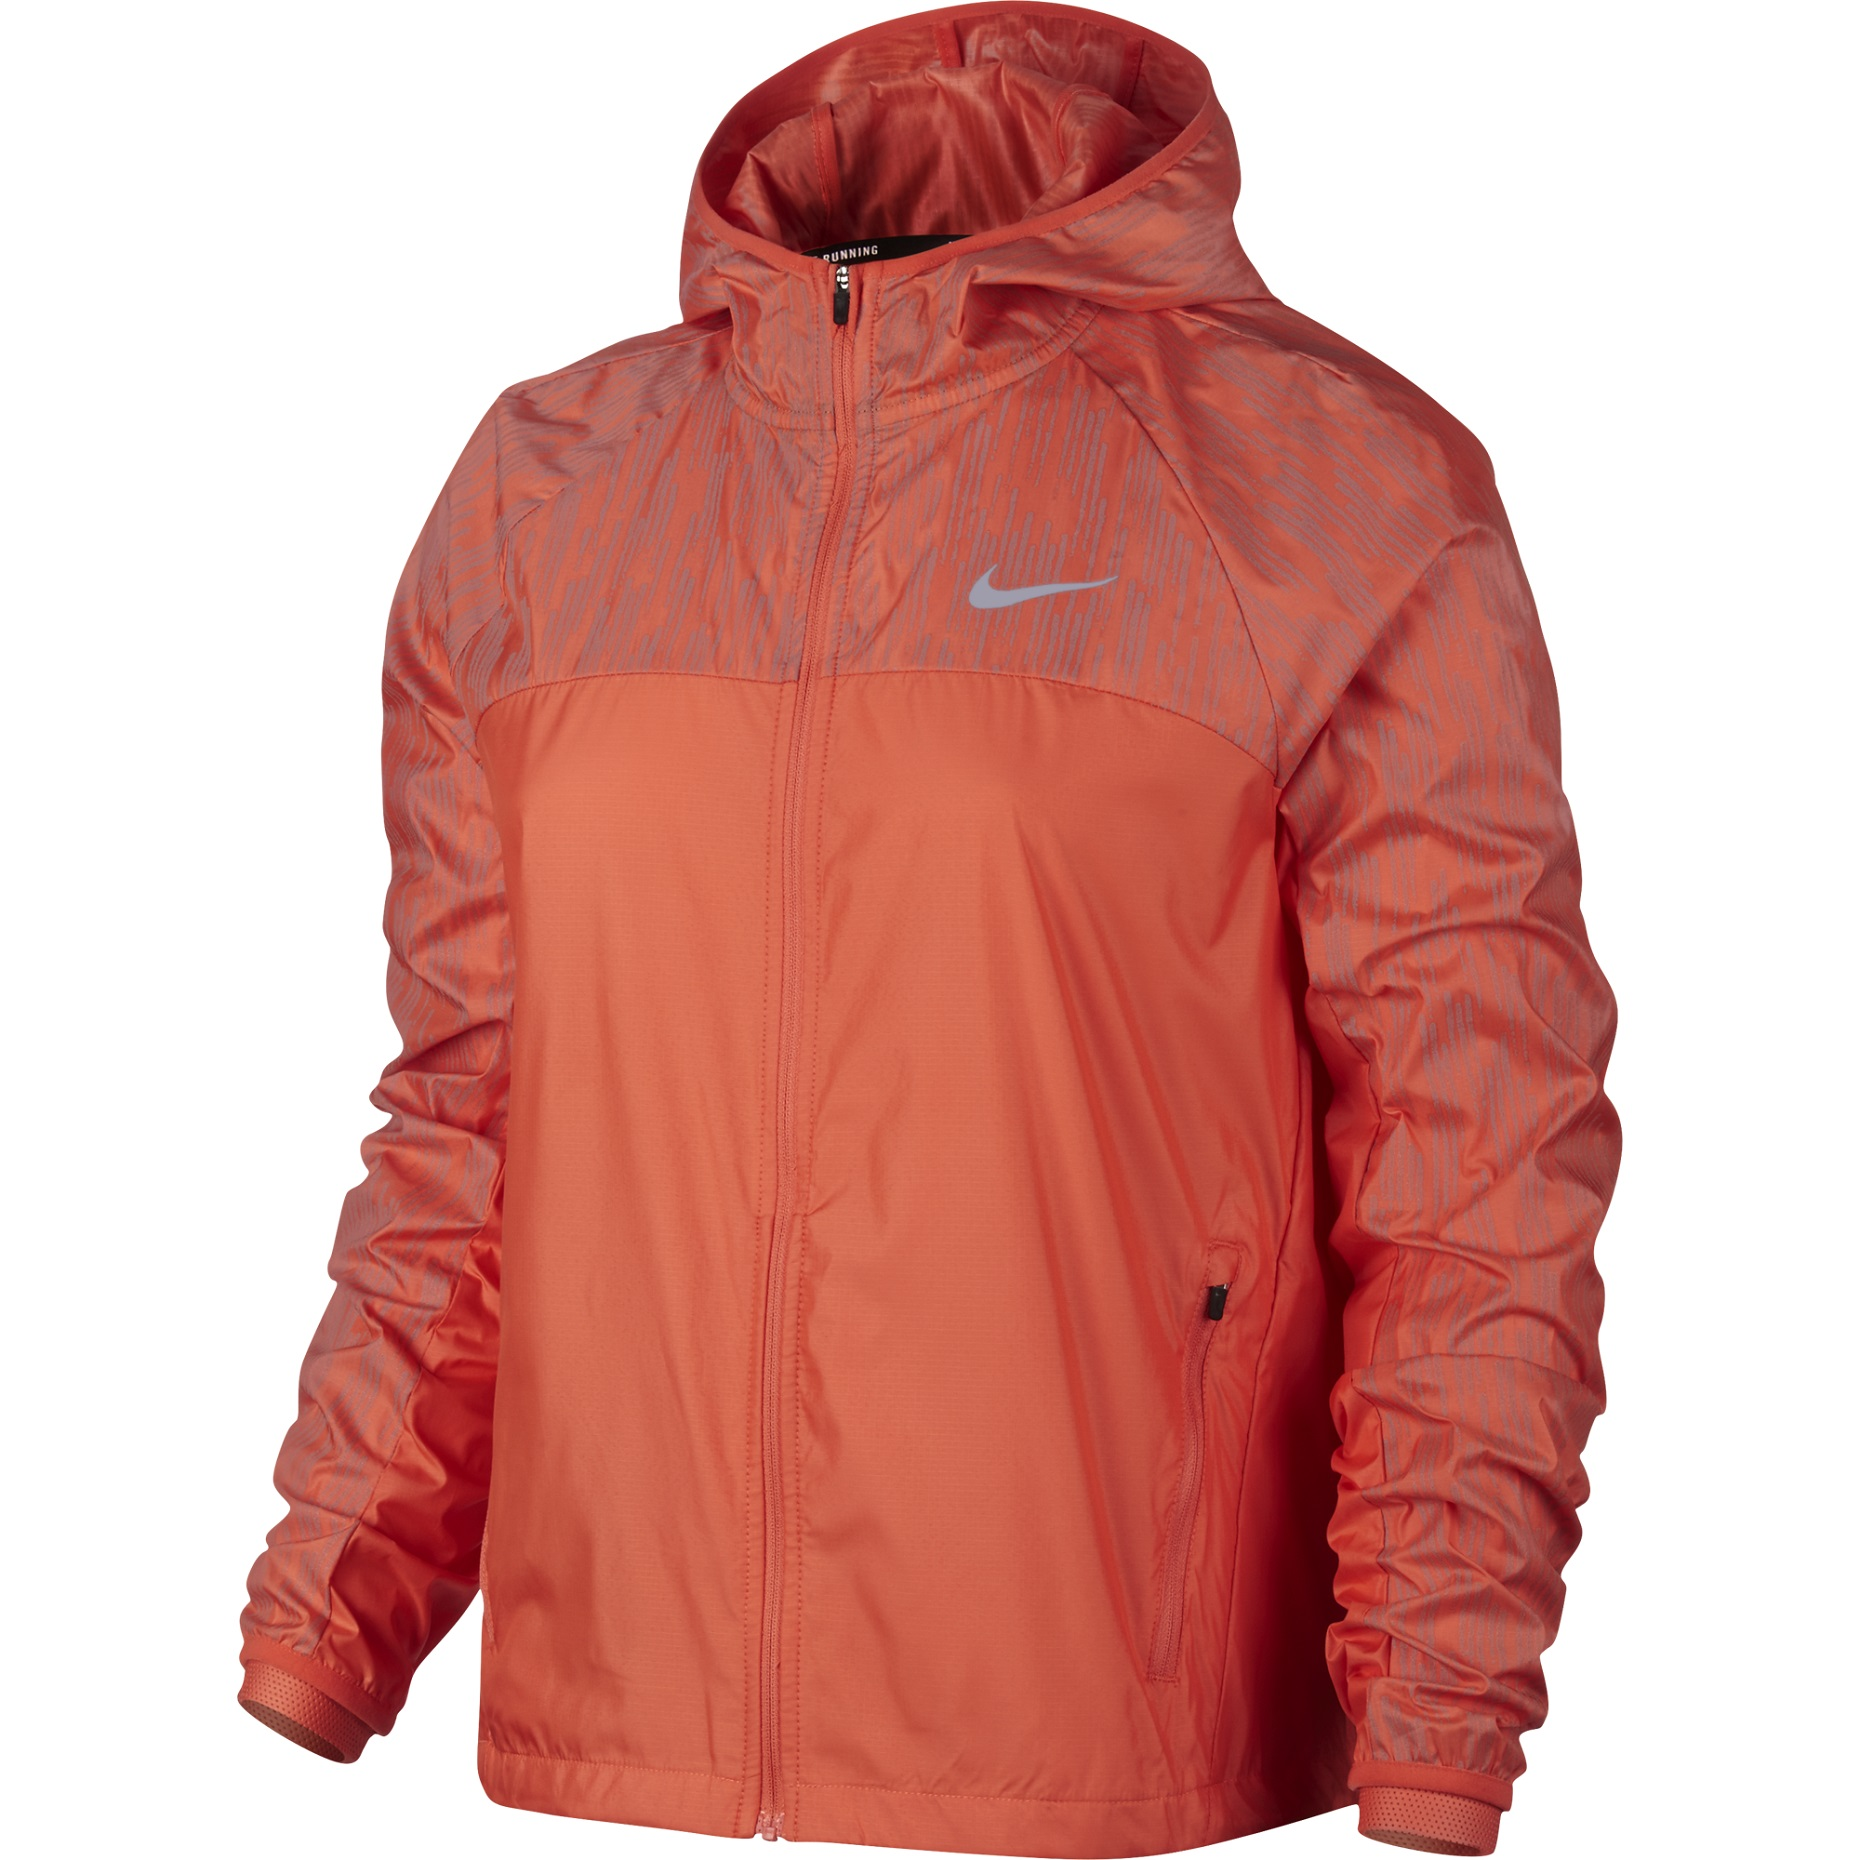 Nike Shield Flash Women s Running Jacket Coral 23239ec04973